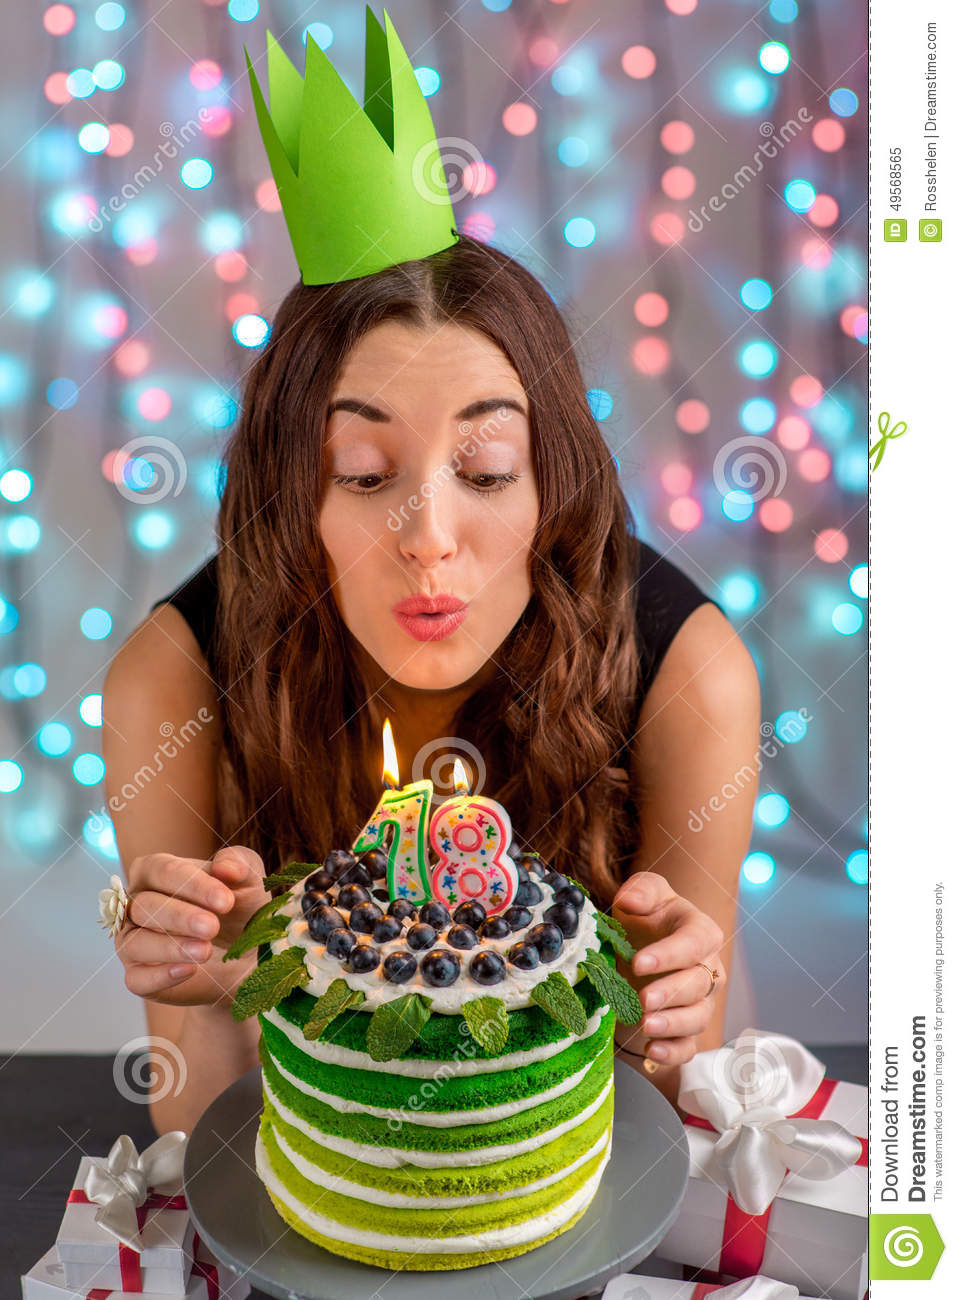 Eighteen Girl With Happy Birthday Cake Blowing Up Candles On Festive Light Background